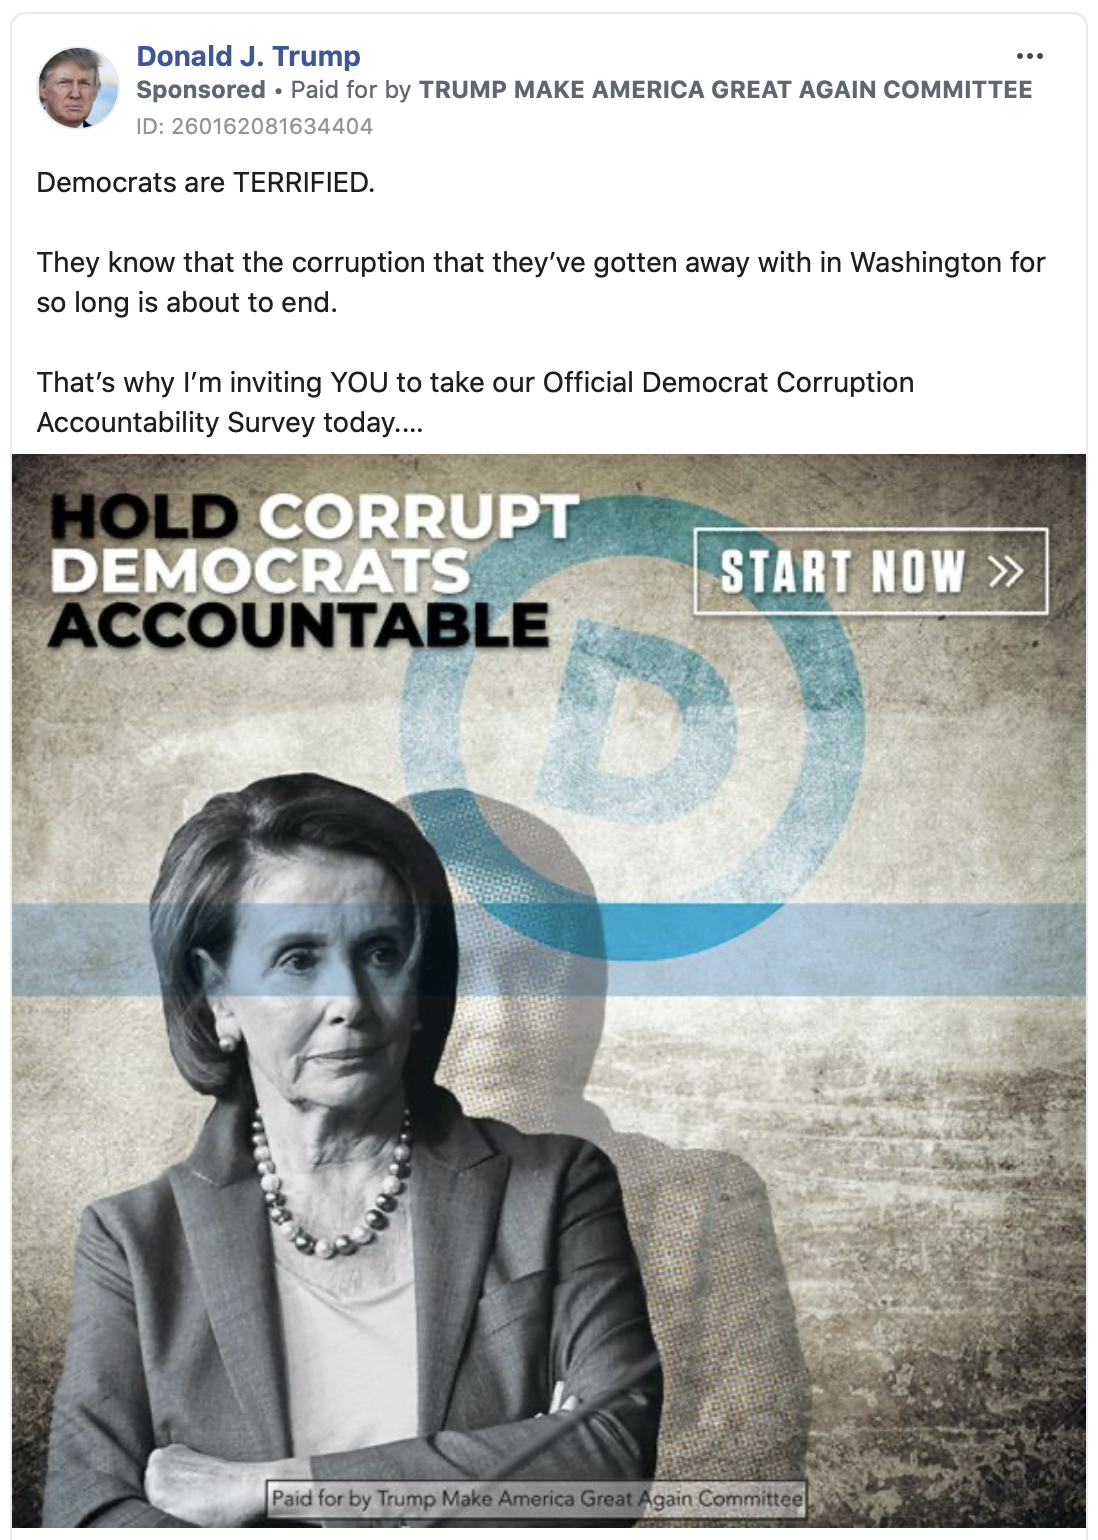 """Image of Trump ad. The ad includes an image of Nancy Pelosi with the caption """"HOLD CORRUPT DEMOCRATS ACCOUNTABLE. START NOW."""" Above the video, the ad includes the following message: """" Democrats are TERRIFIED. They know that the corruption that they've gotten away with in Washington for so long is about to end. That's why I'm inviting YOU to take our Official Democrat Corruption Accountability Survey today. Take the Official Democrat Corruption Accountability Survey before 11:59 PM TONIGHT to make sure your voice is heard."""" Below the image is the caption """"THE DEMOCRAT CORRUPTION ACCOUNTABILITY SURVEY. SHARE YOUR THOUGHTS"""" with a link to a """"DONALDJTRUMP.com."""""""